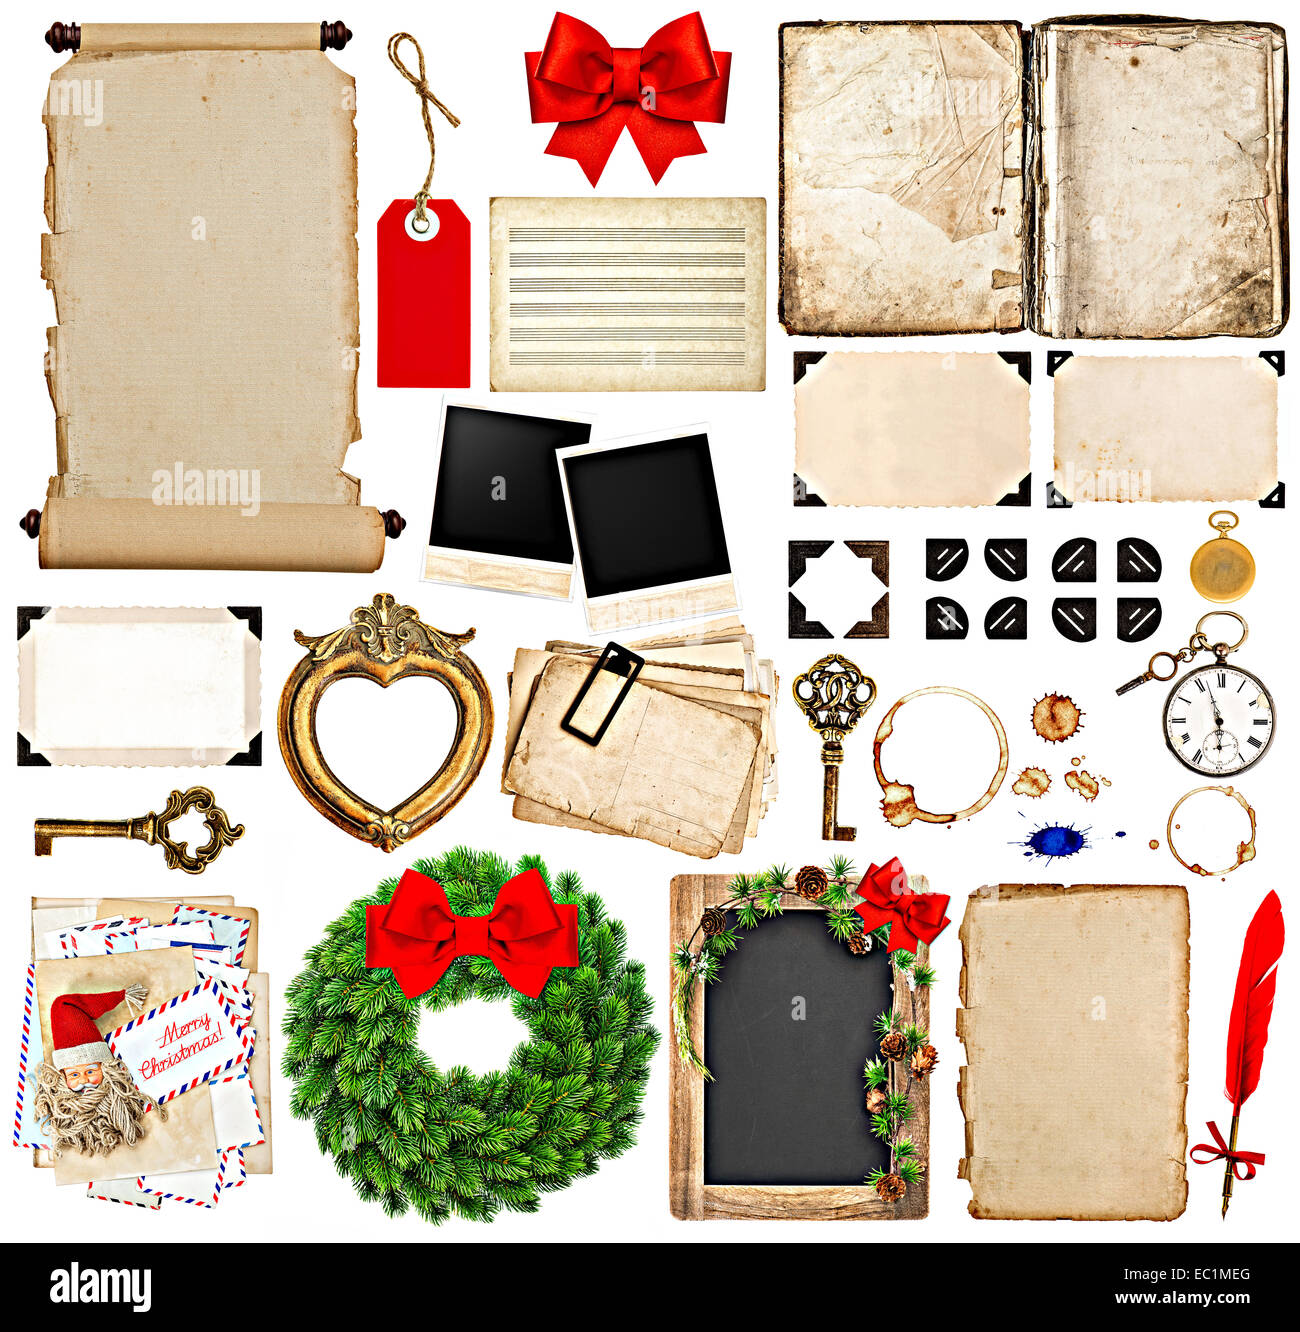 Scrapbook elements for christmas holidays greetings old book scrapbook elements for christmas holidays greetings old book pages paper scroll wreath blackboard corner and photo frames kristyandbryce Image collections